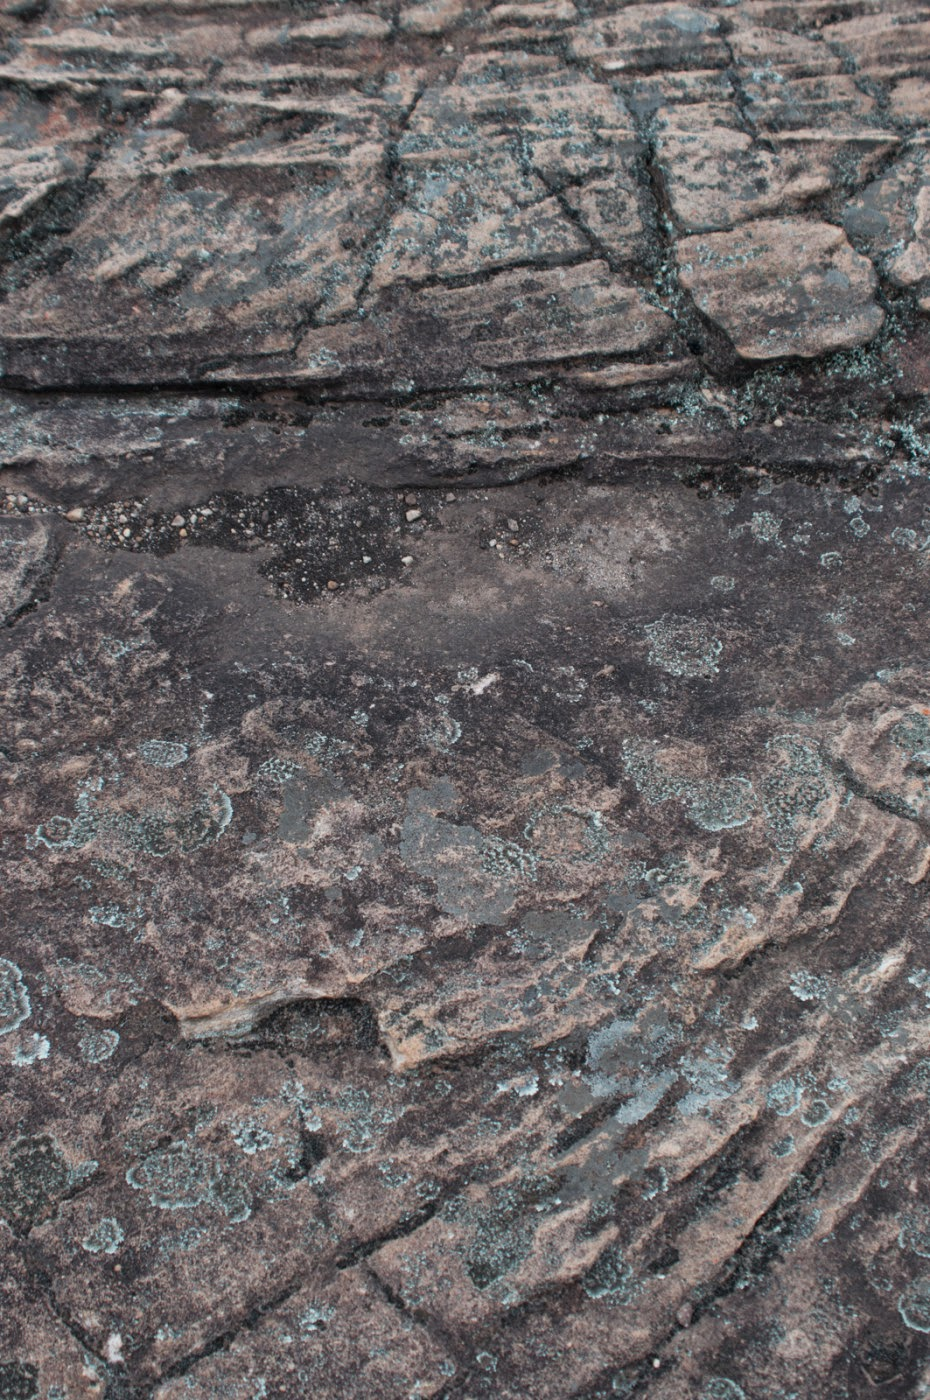 Grampians, sandstone, northern Grampians, Tim Macauley, Timothy Macauley, geology, abstract, abstraction, graphic, graphical, ground, floor, texture, rock, you won't see this at MoMA, Victoria, Australia, photographic art, photographic artist